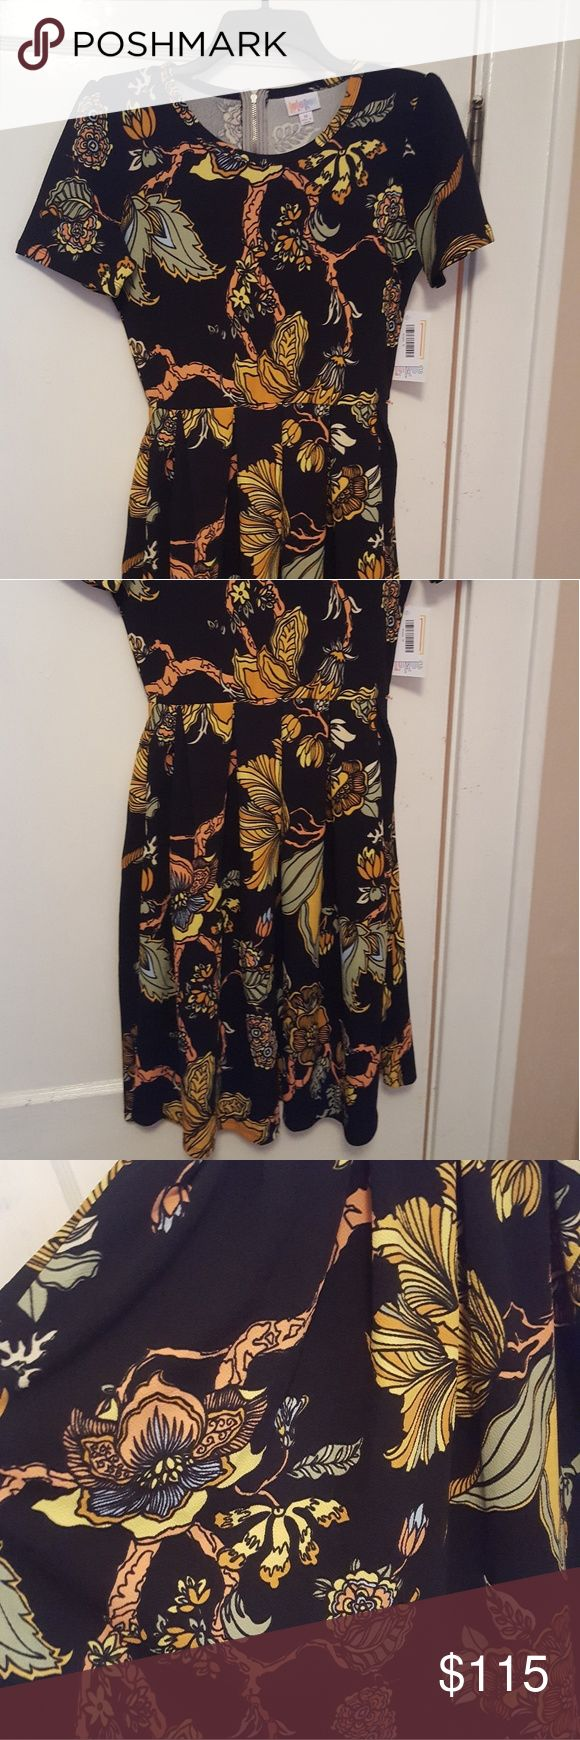 NWT UNICORN LULAROE Amelia floral dress M NWT lularoe Amelia navy blue dress in size medium. A line cut, pincess sleeves, full swing skirt and 2 slim slant hidden hip pockets. GORGEOUS floral pattern, luscious colors and Incredibly figure flattering.  Google the multiple ways to style these pieces- they are the PERFECT vacation item when traveling light! Each piece is unique. Any questions please feel free to ask :) I also offer combined shipping discounts on multiple purchases LuLaRoe…